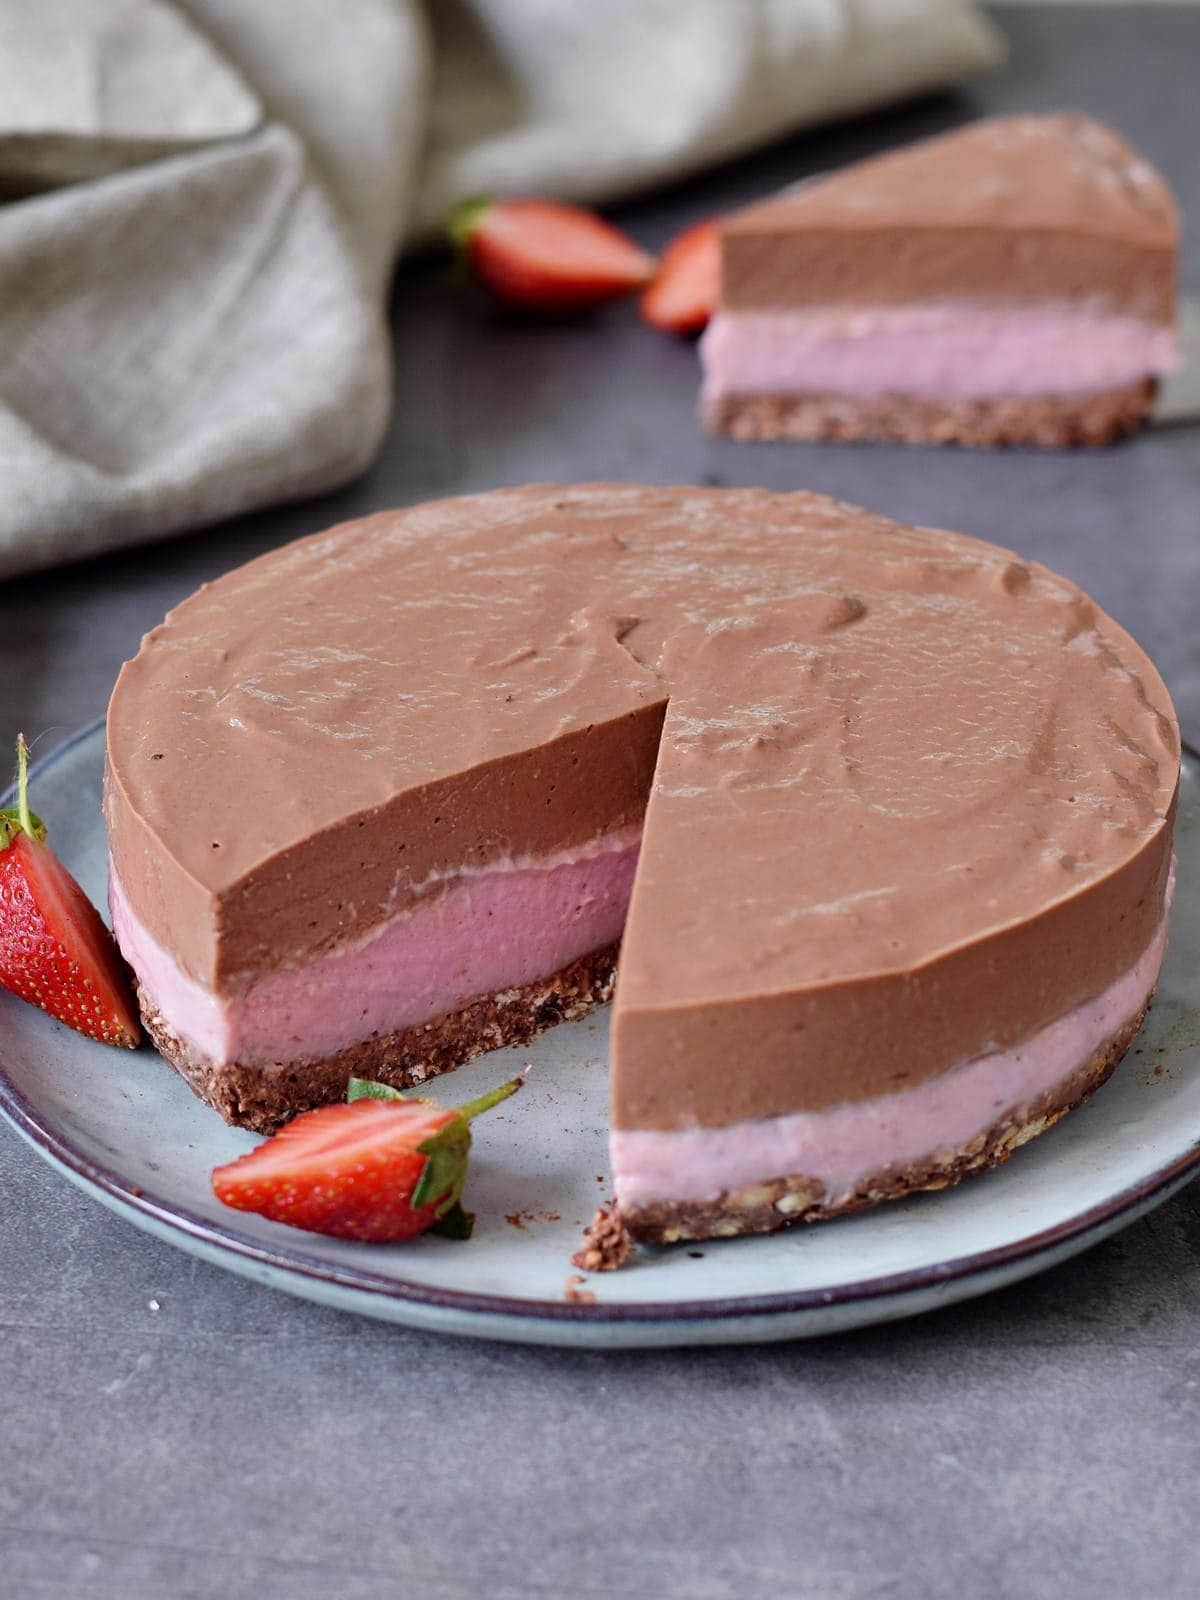 chocolate strawberry cheesecake with one piece in the background